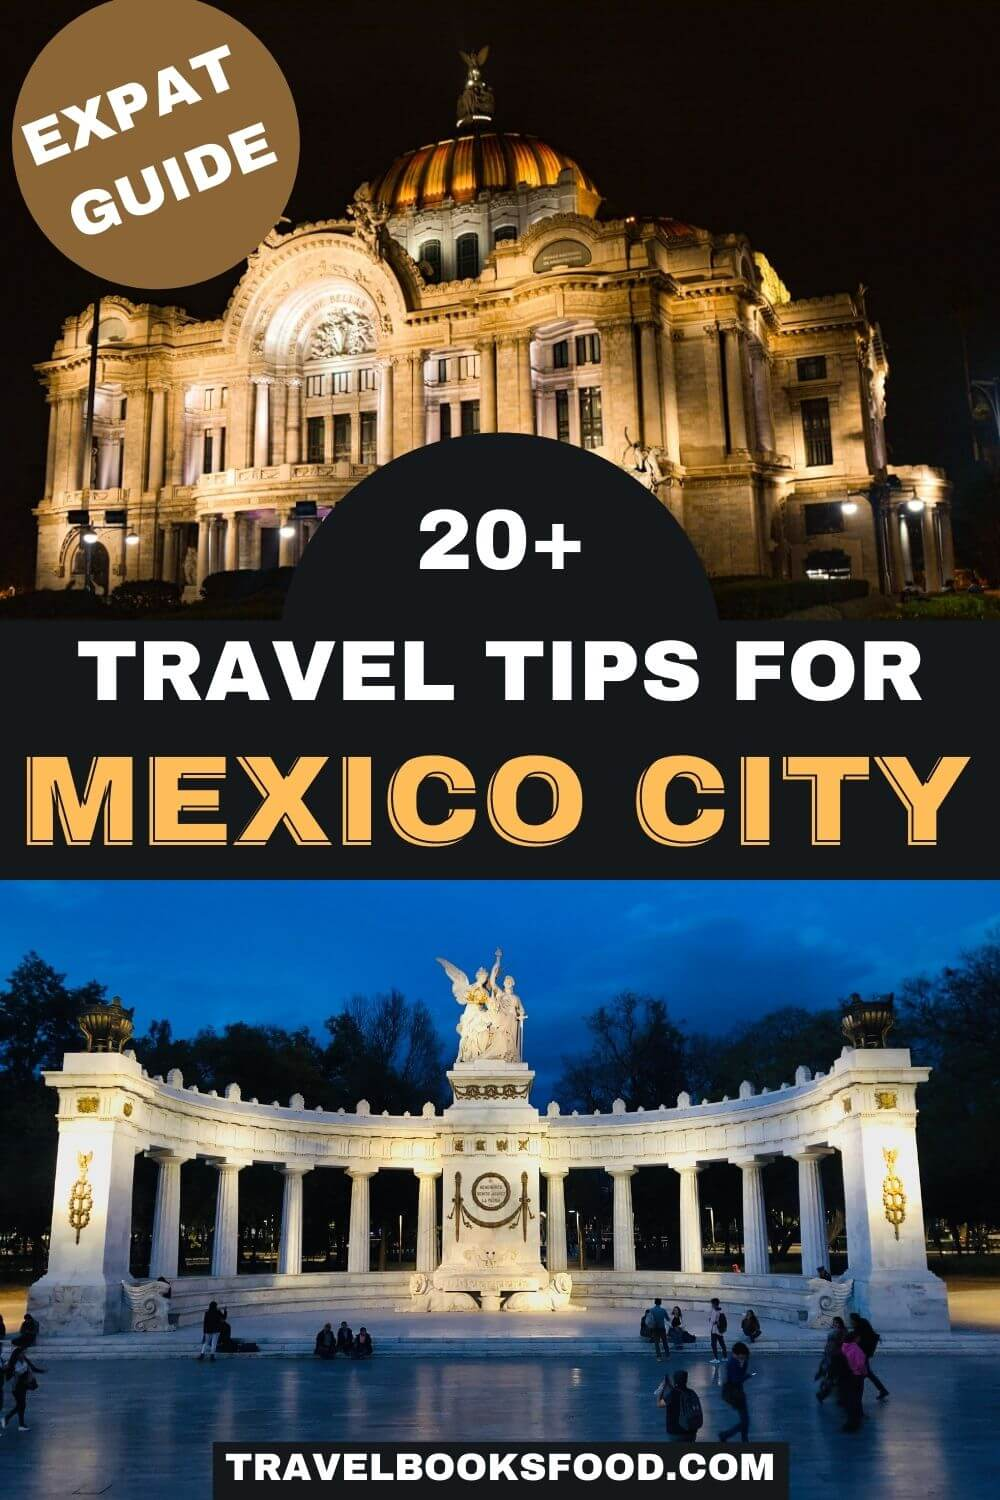 Planning a trip to Mexico City and looking for some Mexico City travel tips. Find everything to know about planning the perfect CDMX trip with this ultimate Mexico City travel guide. Find all the details of how much to budget for Mexico City, where to stay in CDMX and general Mexico City facts